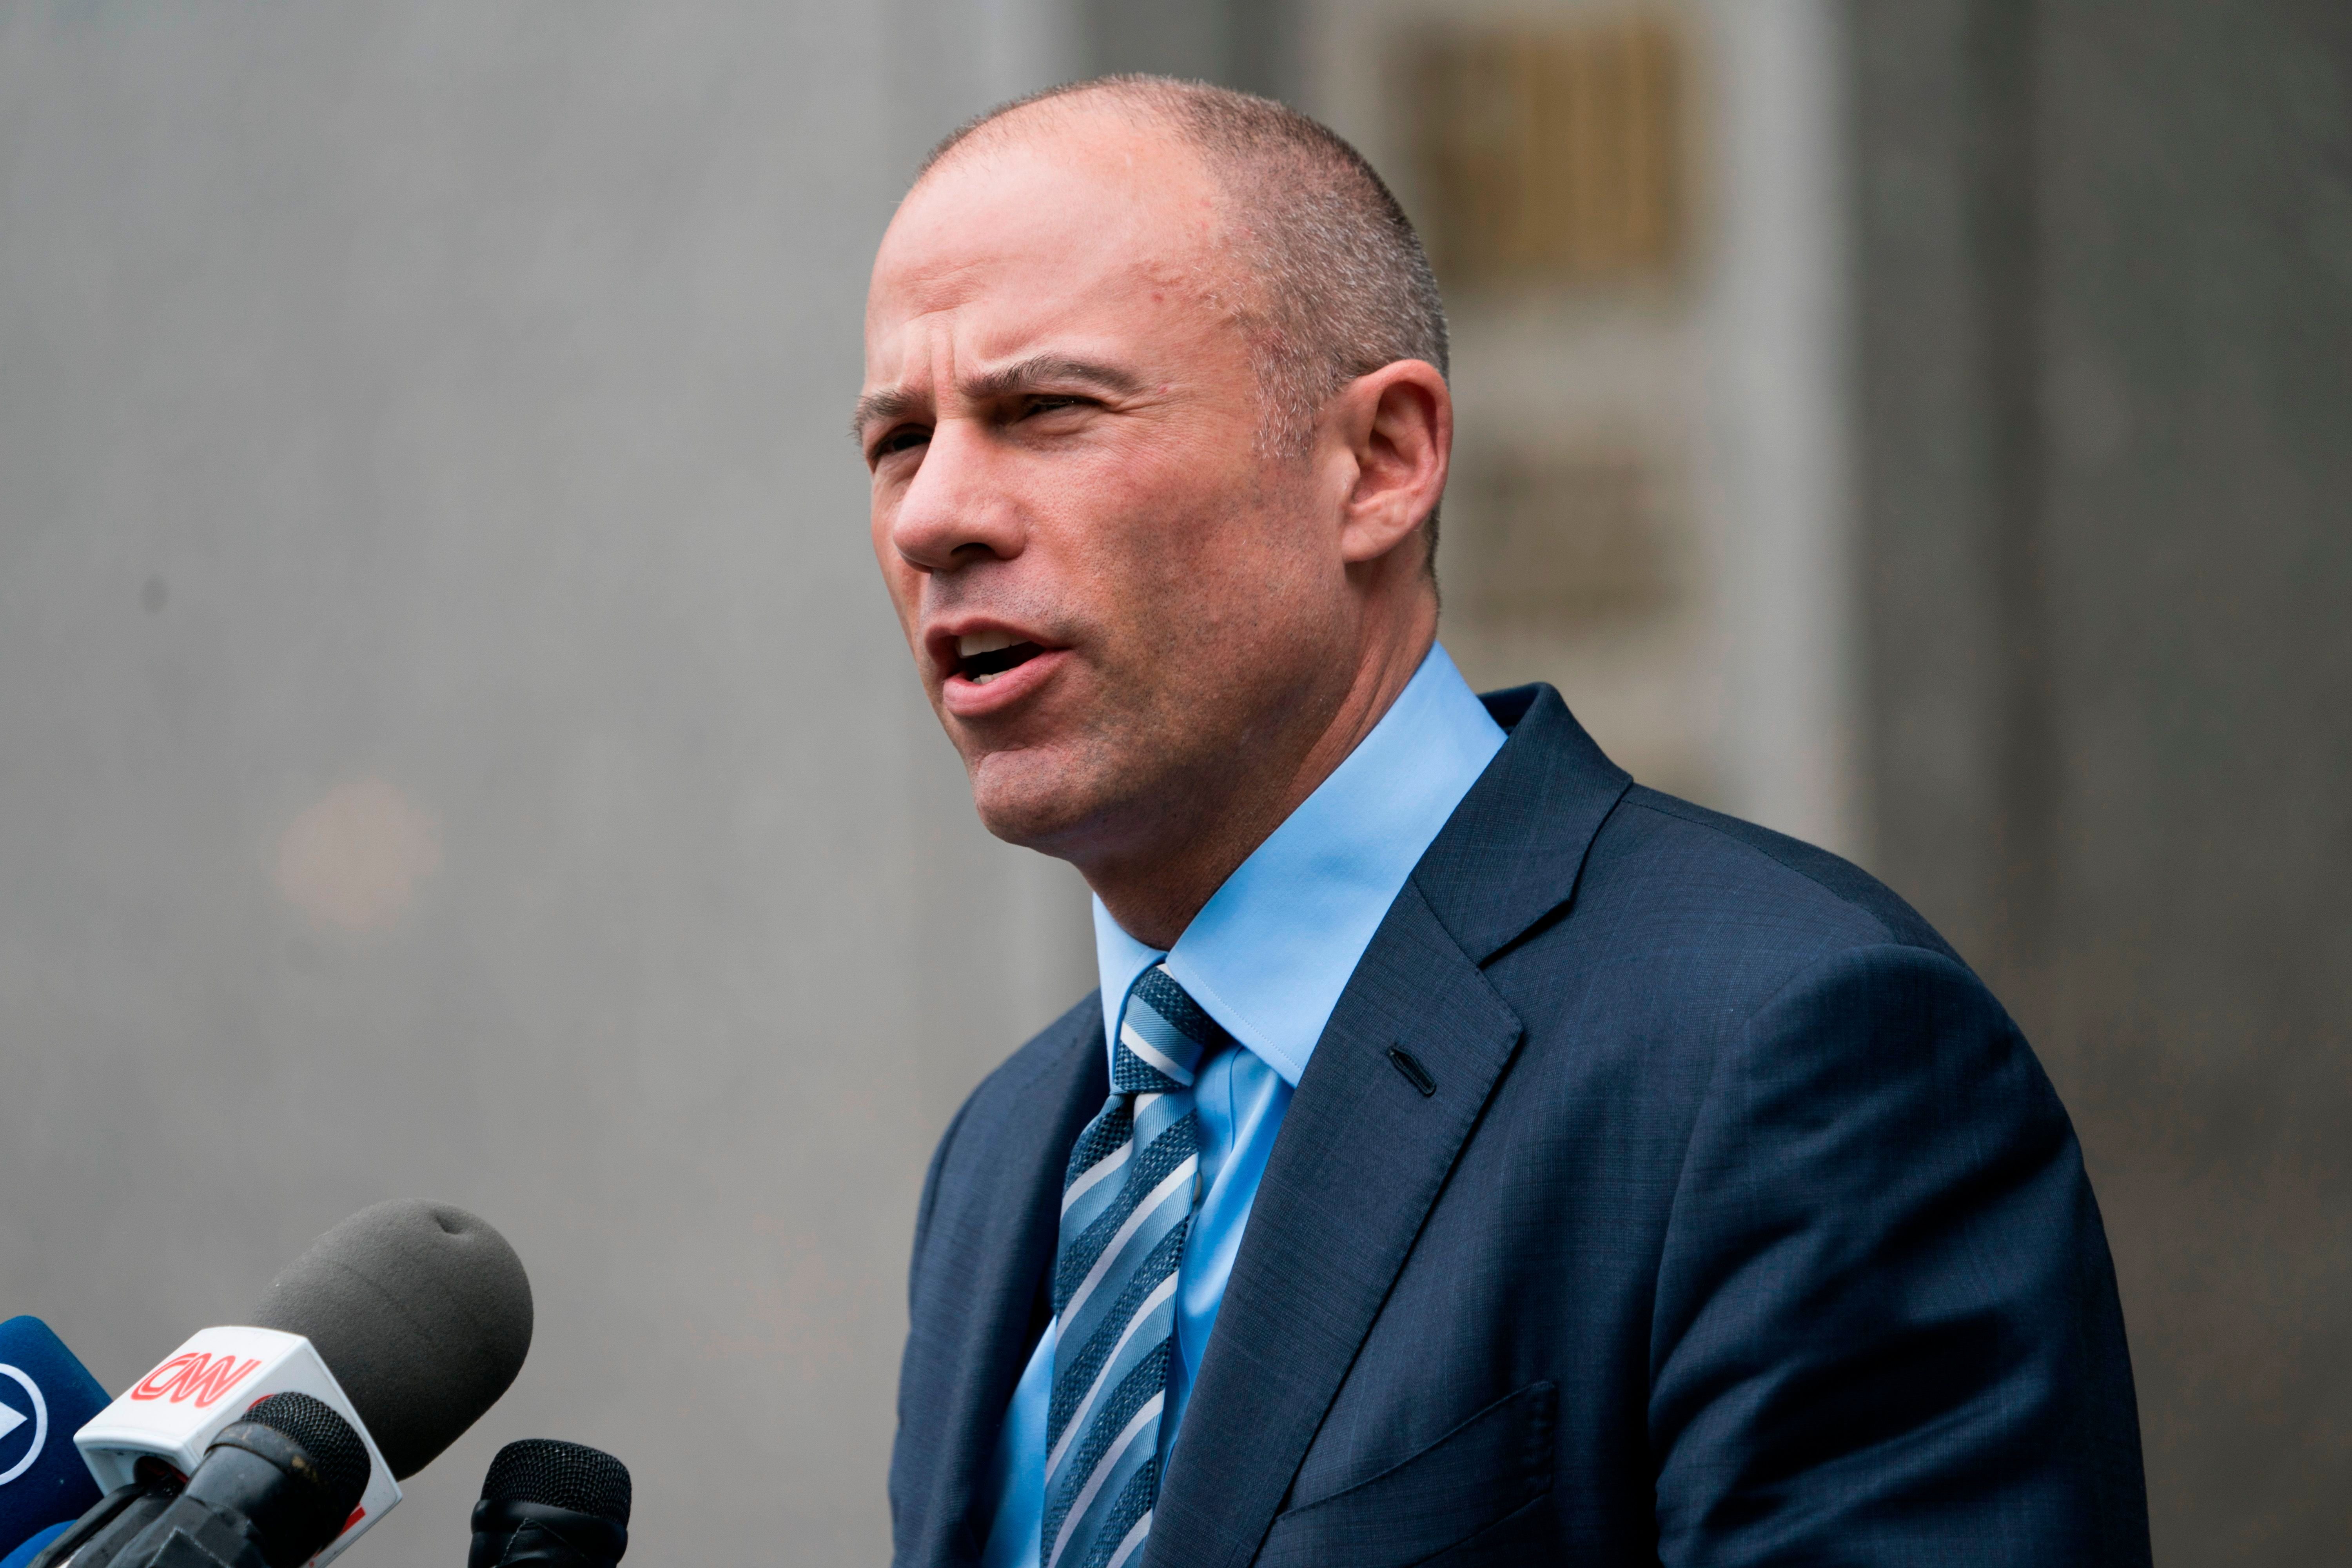 Michael Avenatti speaks to the press as he leaves at the United States District Court Southern District of New York on May 30, 2018 in New York City. - According to a filing submitted to the court Tuesday night by special master Barbara Jones, federal prosecutors investigating Michael Cohen are set to receive 1 million files from three of his cellphones that were seized last month. (Photo by Don EMMERT / AFP)        (Photo credit should read DON EMMERT/AFP/Getty Images)